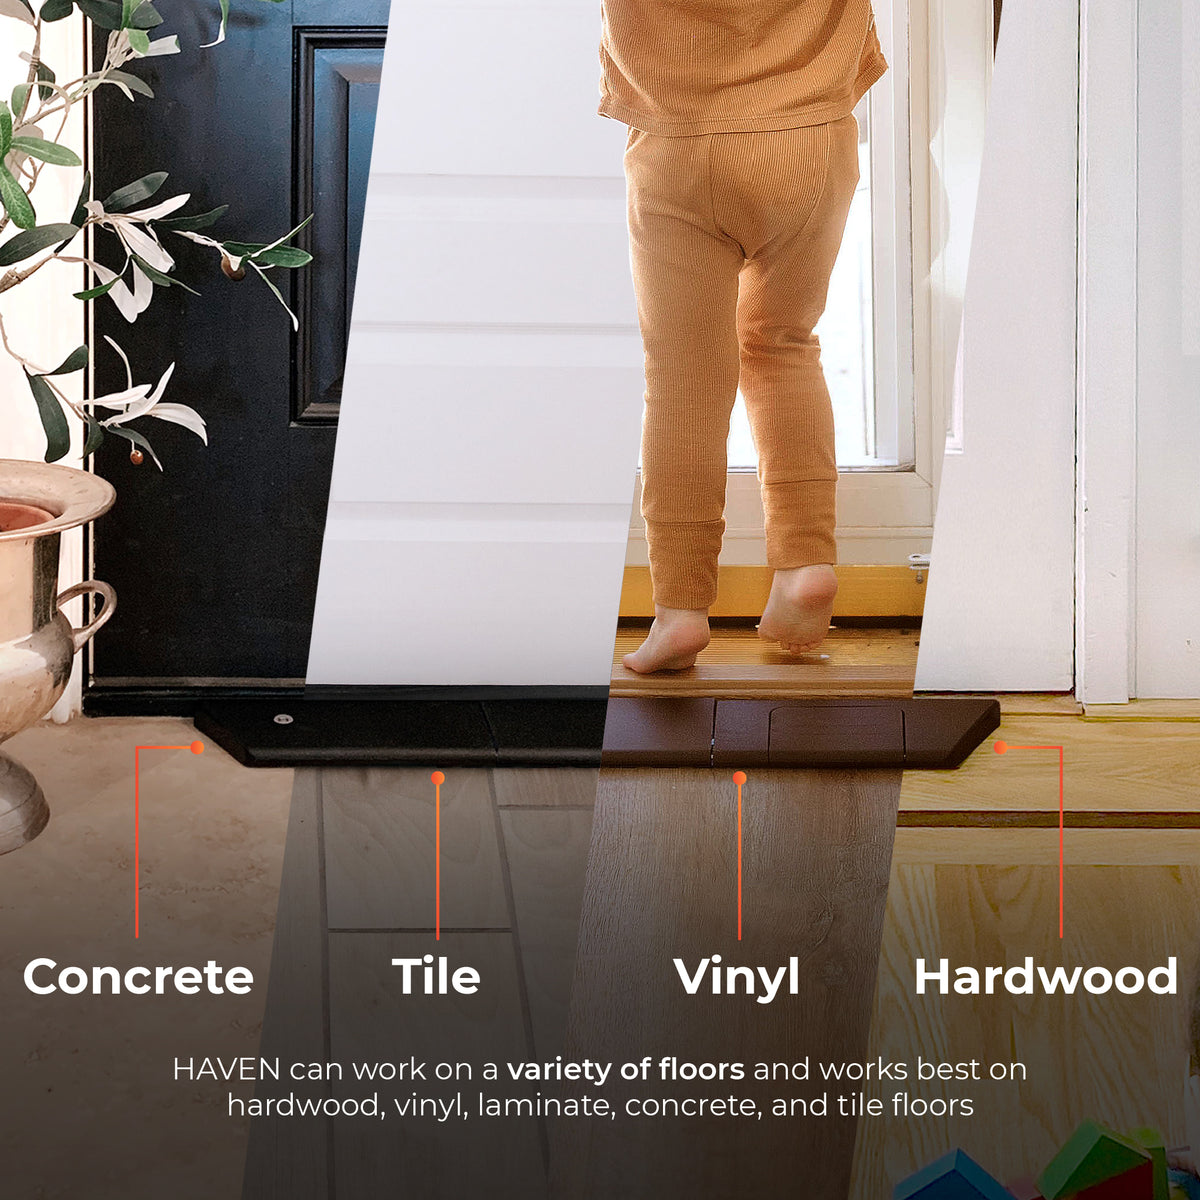 Haven can work on a variety of floors and works best on hardwood, vinyl, laminate, concrete and tile floors